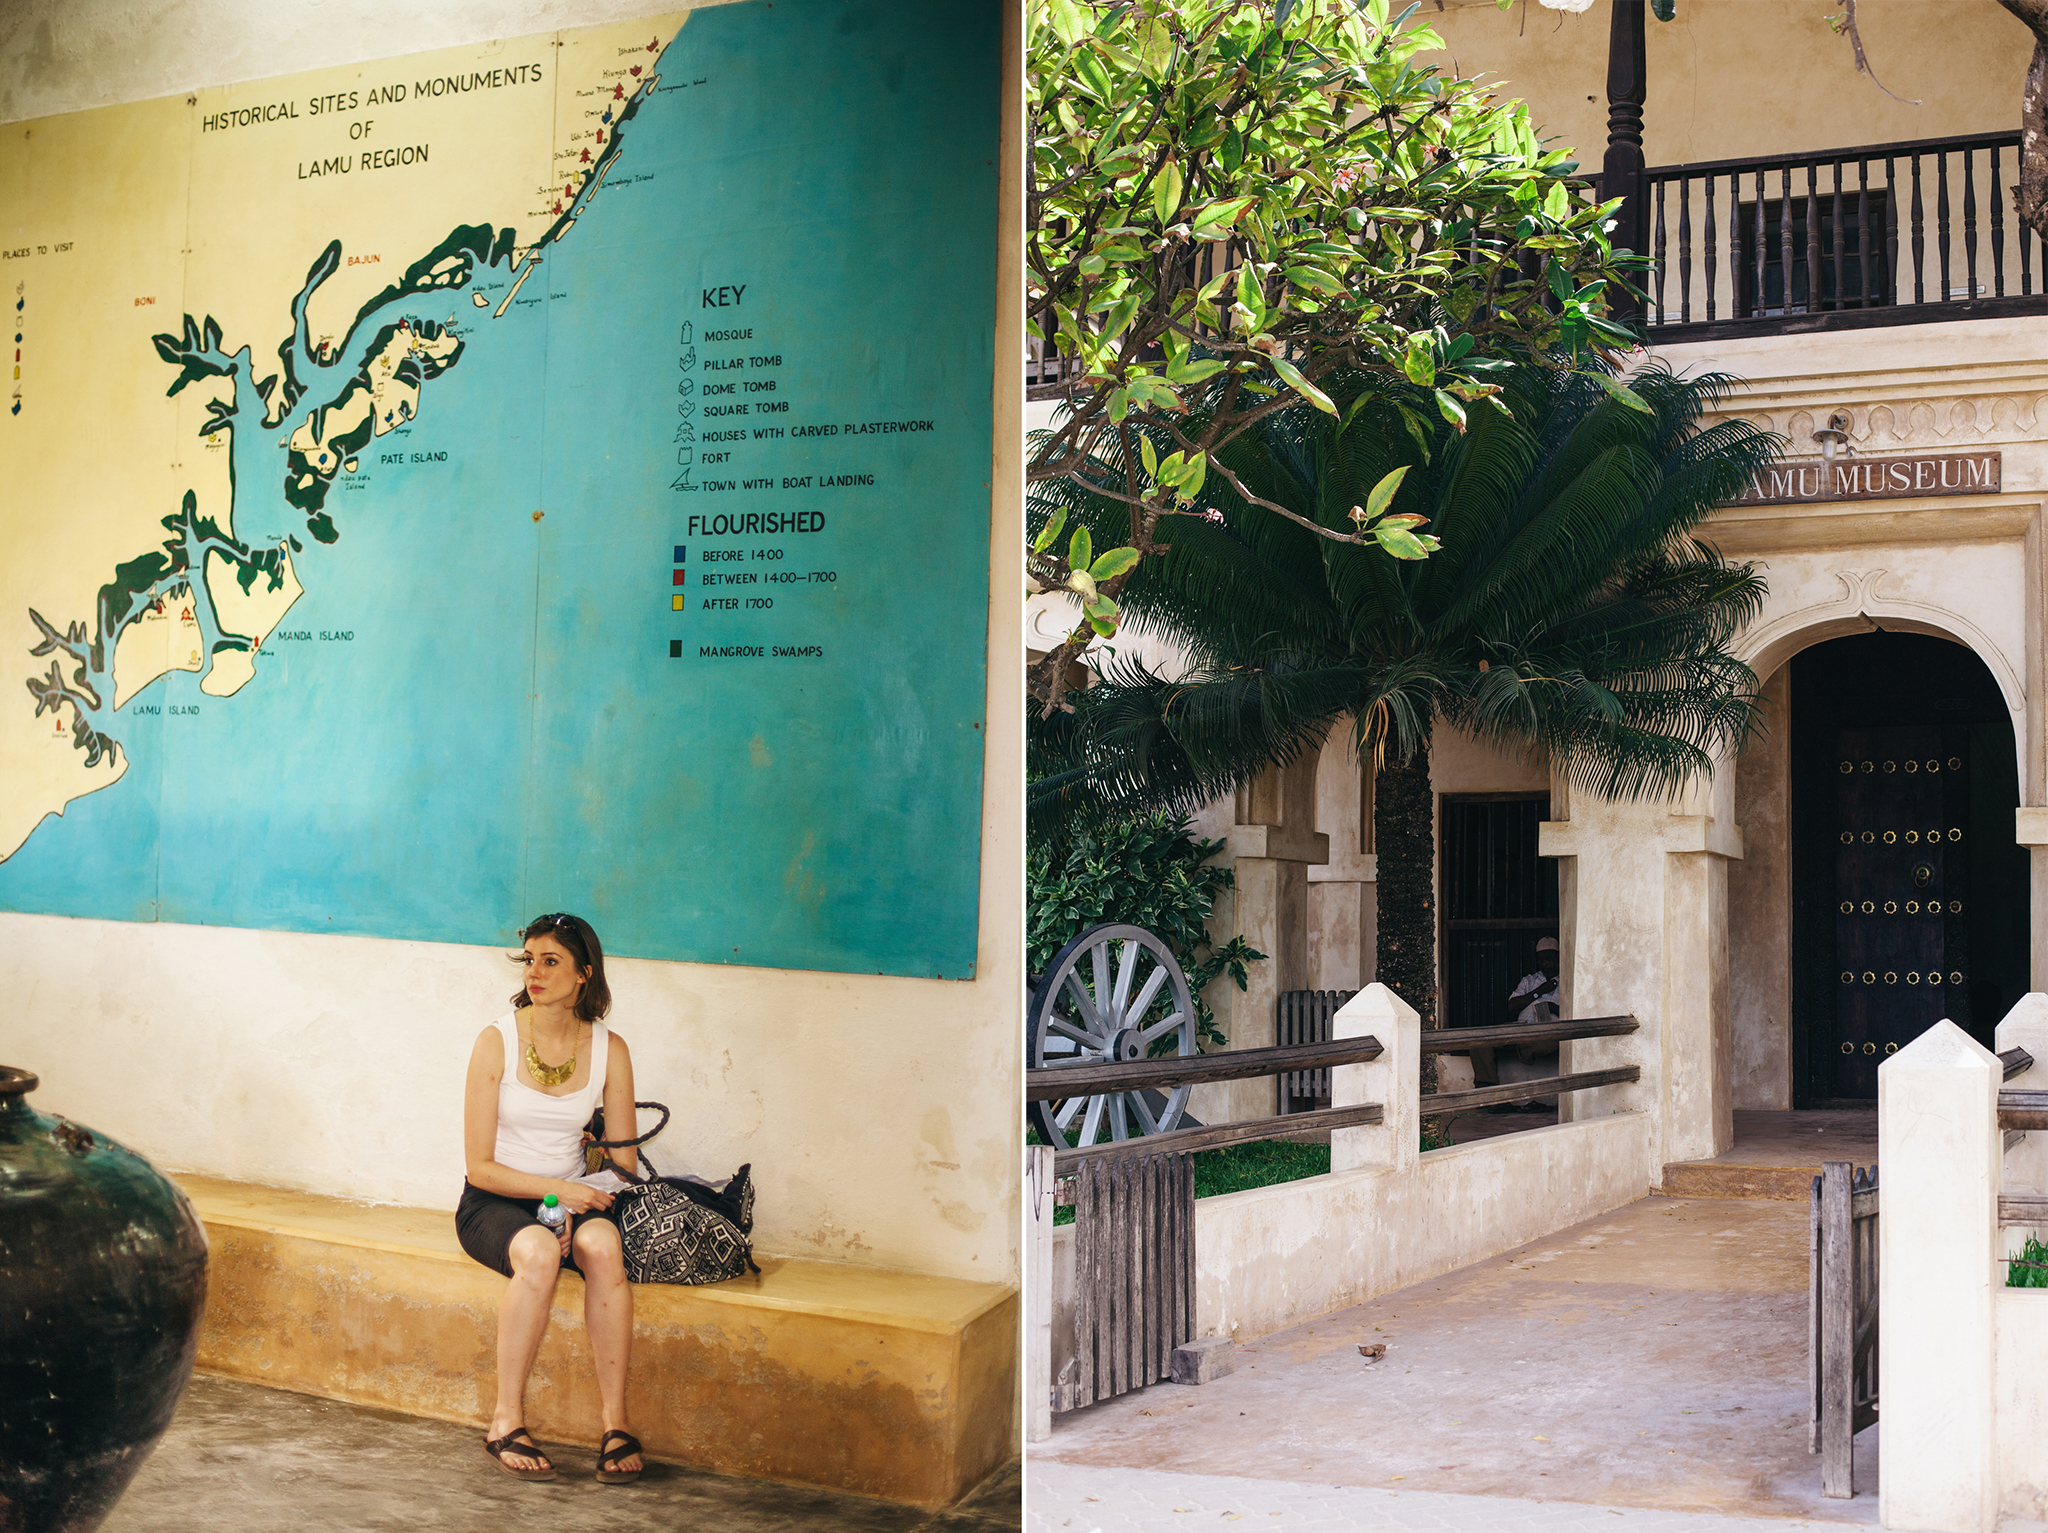 Lamu museum was filled with fascinating information!